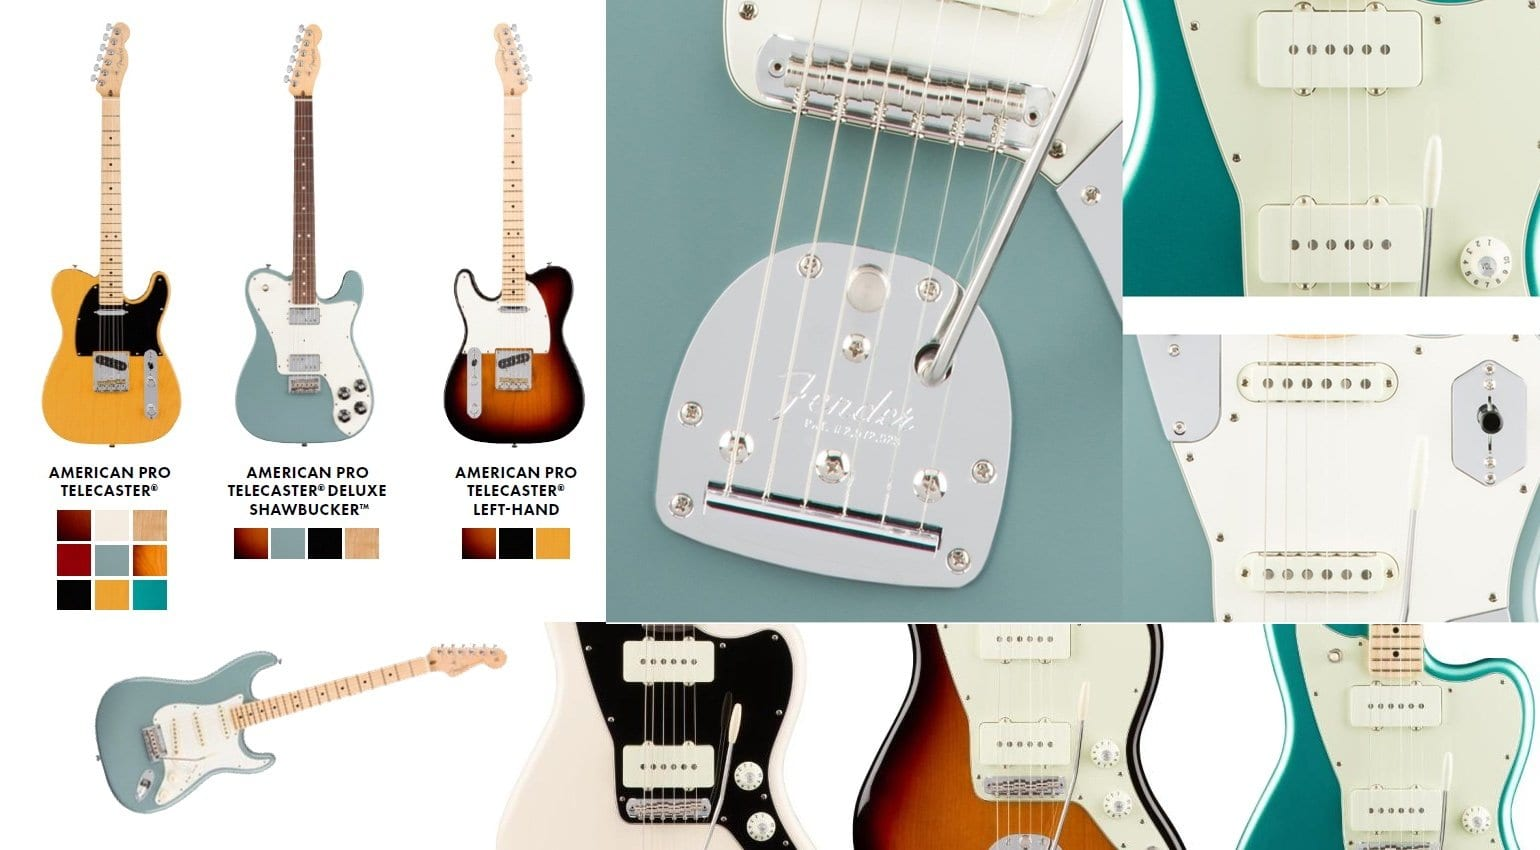 Fender Pro Usa Series Leak New Offsets Strats And Teles To Launch Strat Master Tone Stratocaster Guitar Forum American Professional Lineup For 2017 Source The Fretboardcouk